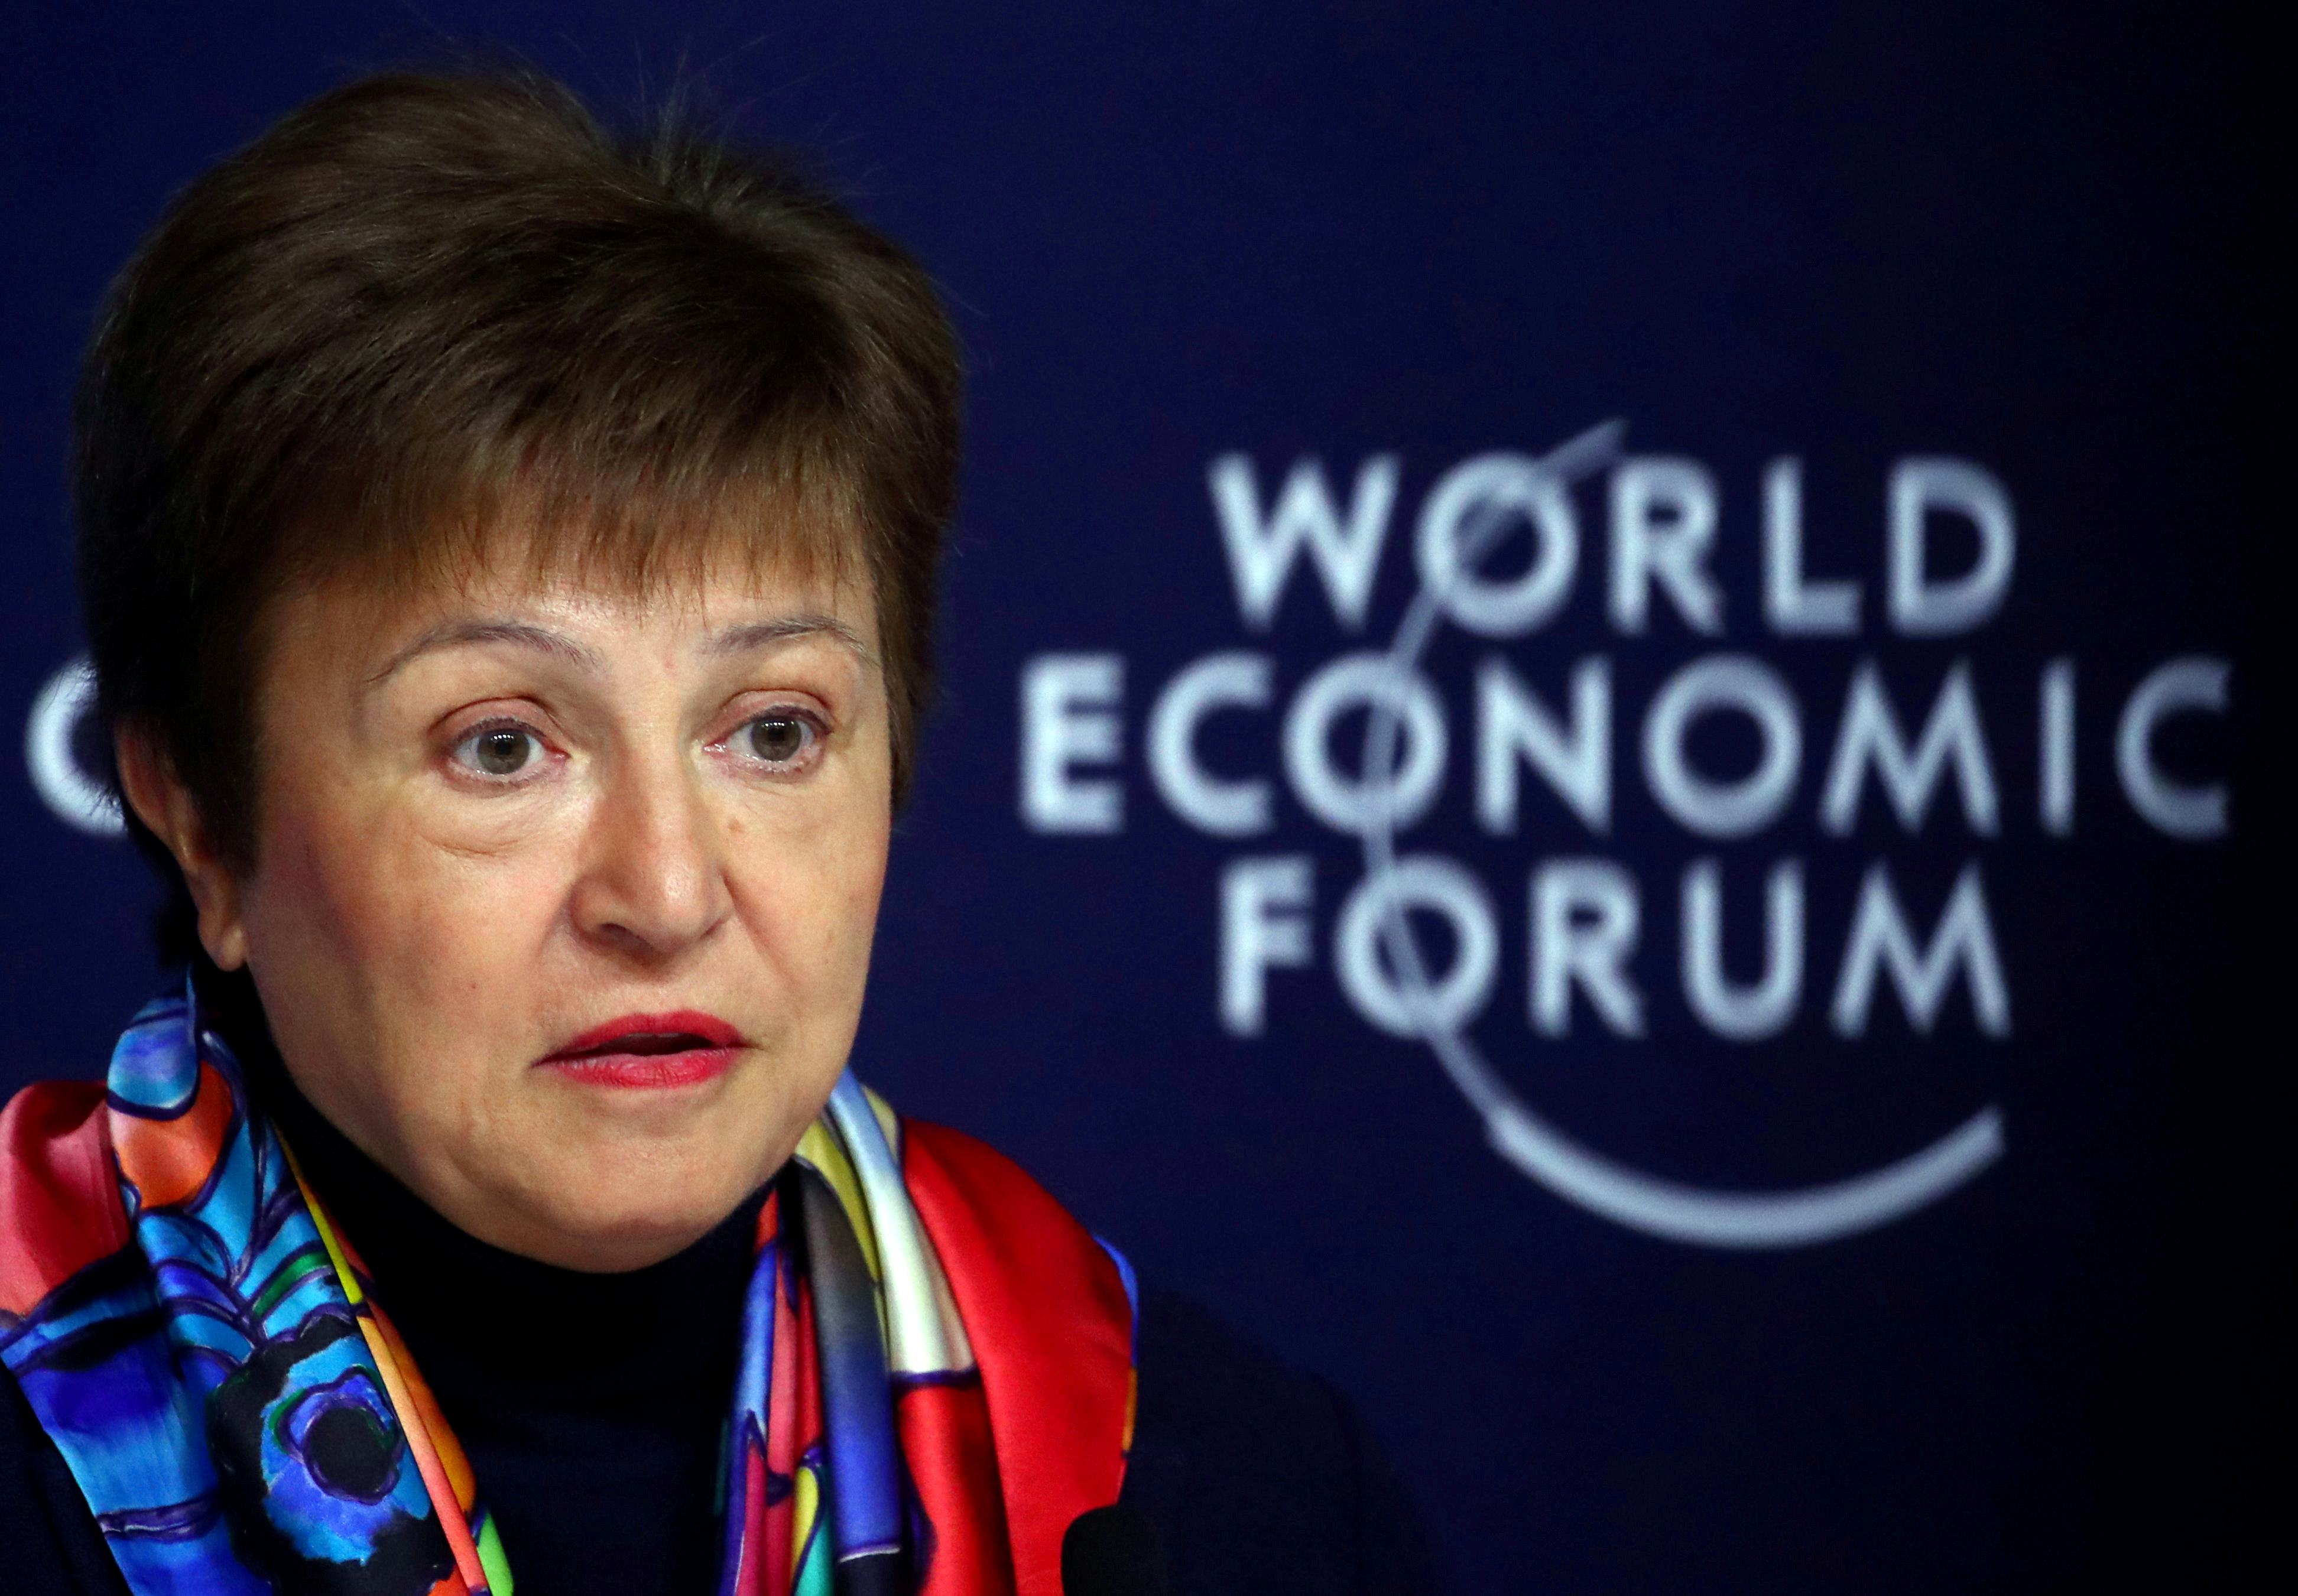 IMF Managing Director Kristalina Georgieva speaks at a news conference ahead of the World Economic Forum (WEF) in Davos, Switzerland January 20, 2020. REUTERS/Denis Balibouse/File Photo